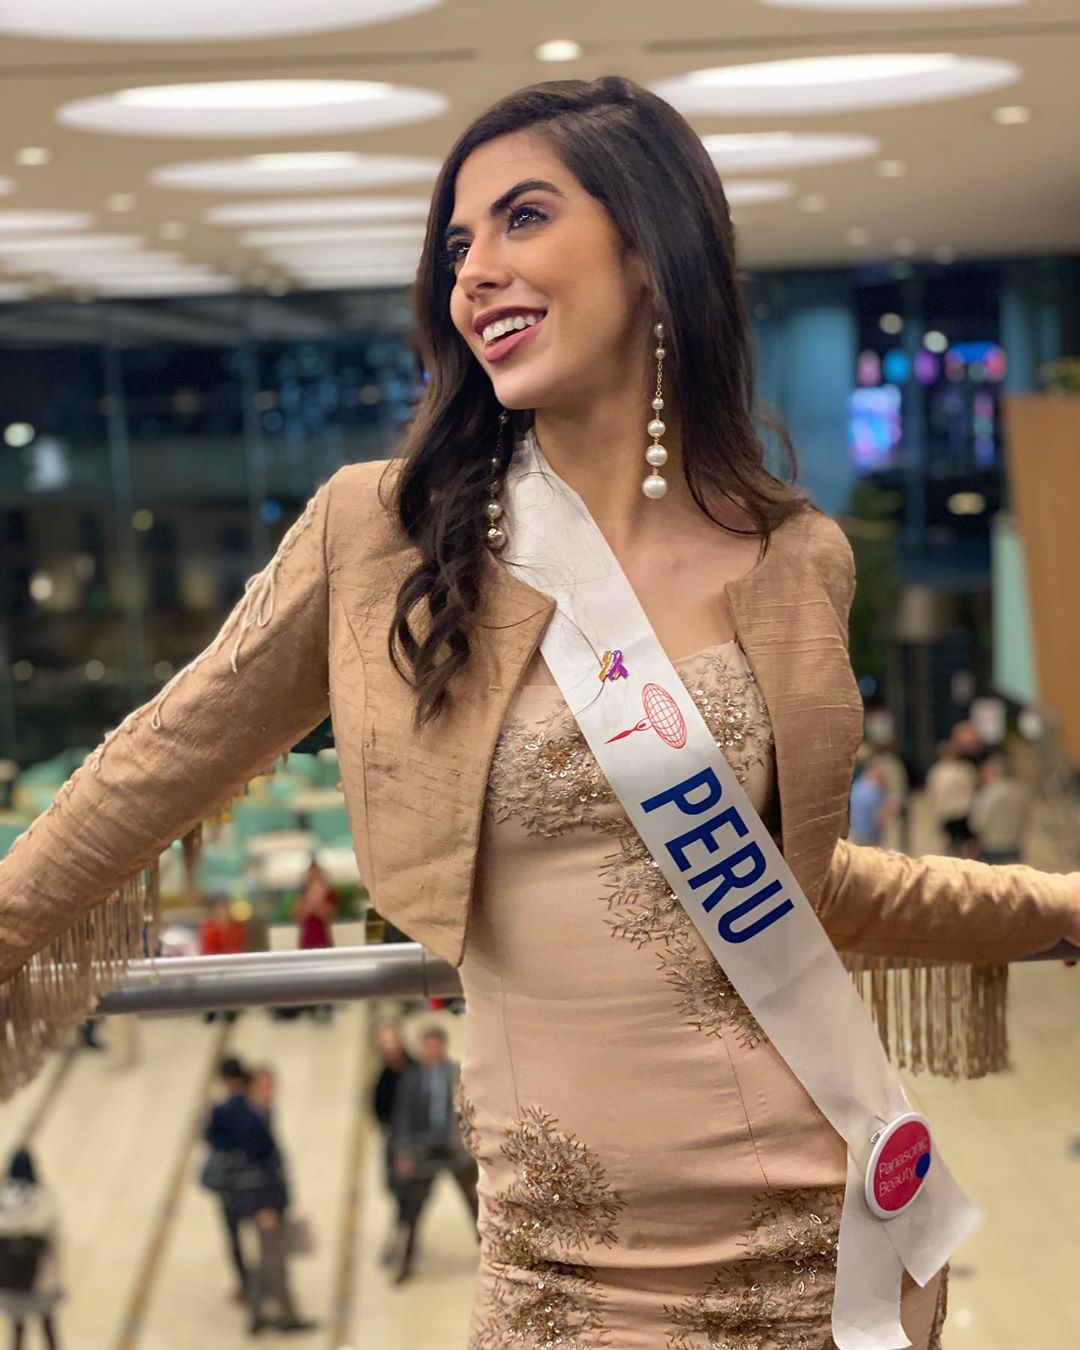 majo barbis, miss international peru 2019. - Página 7 74463210